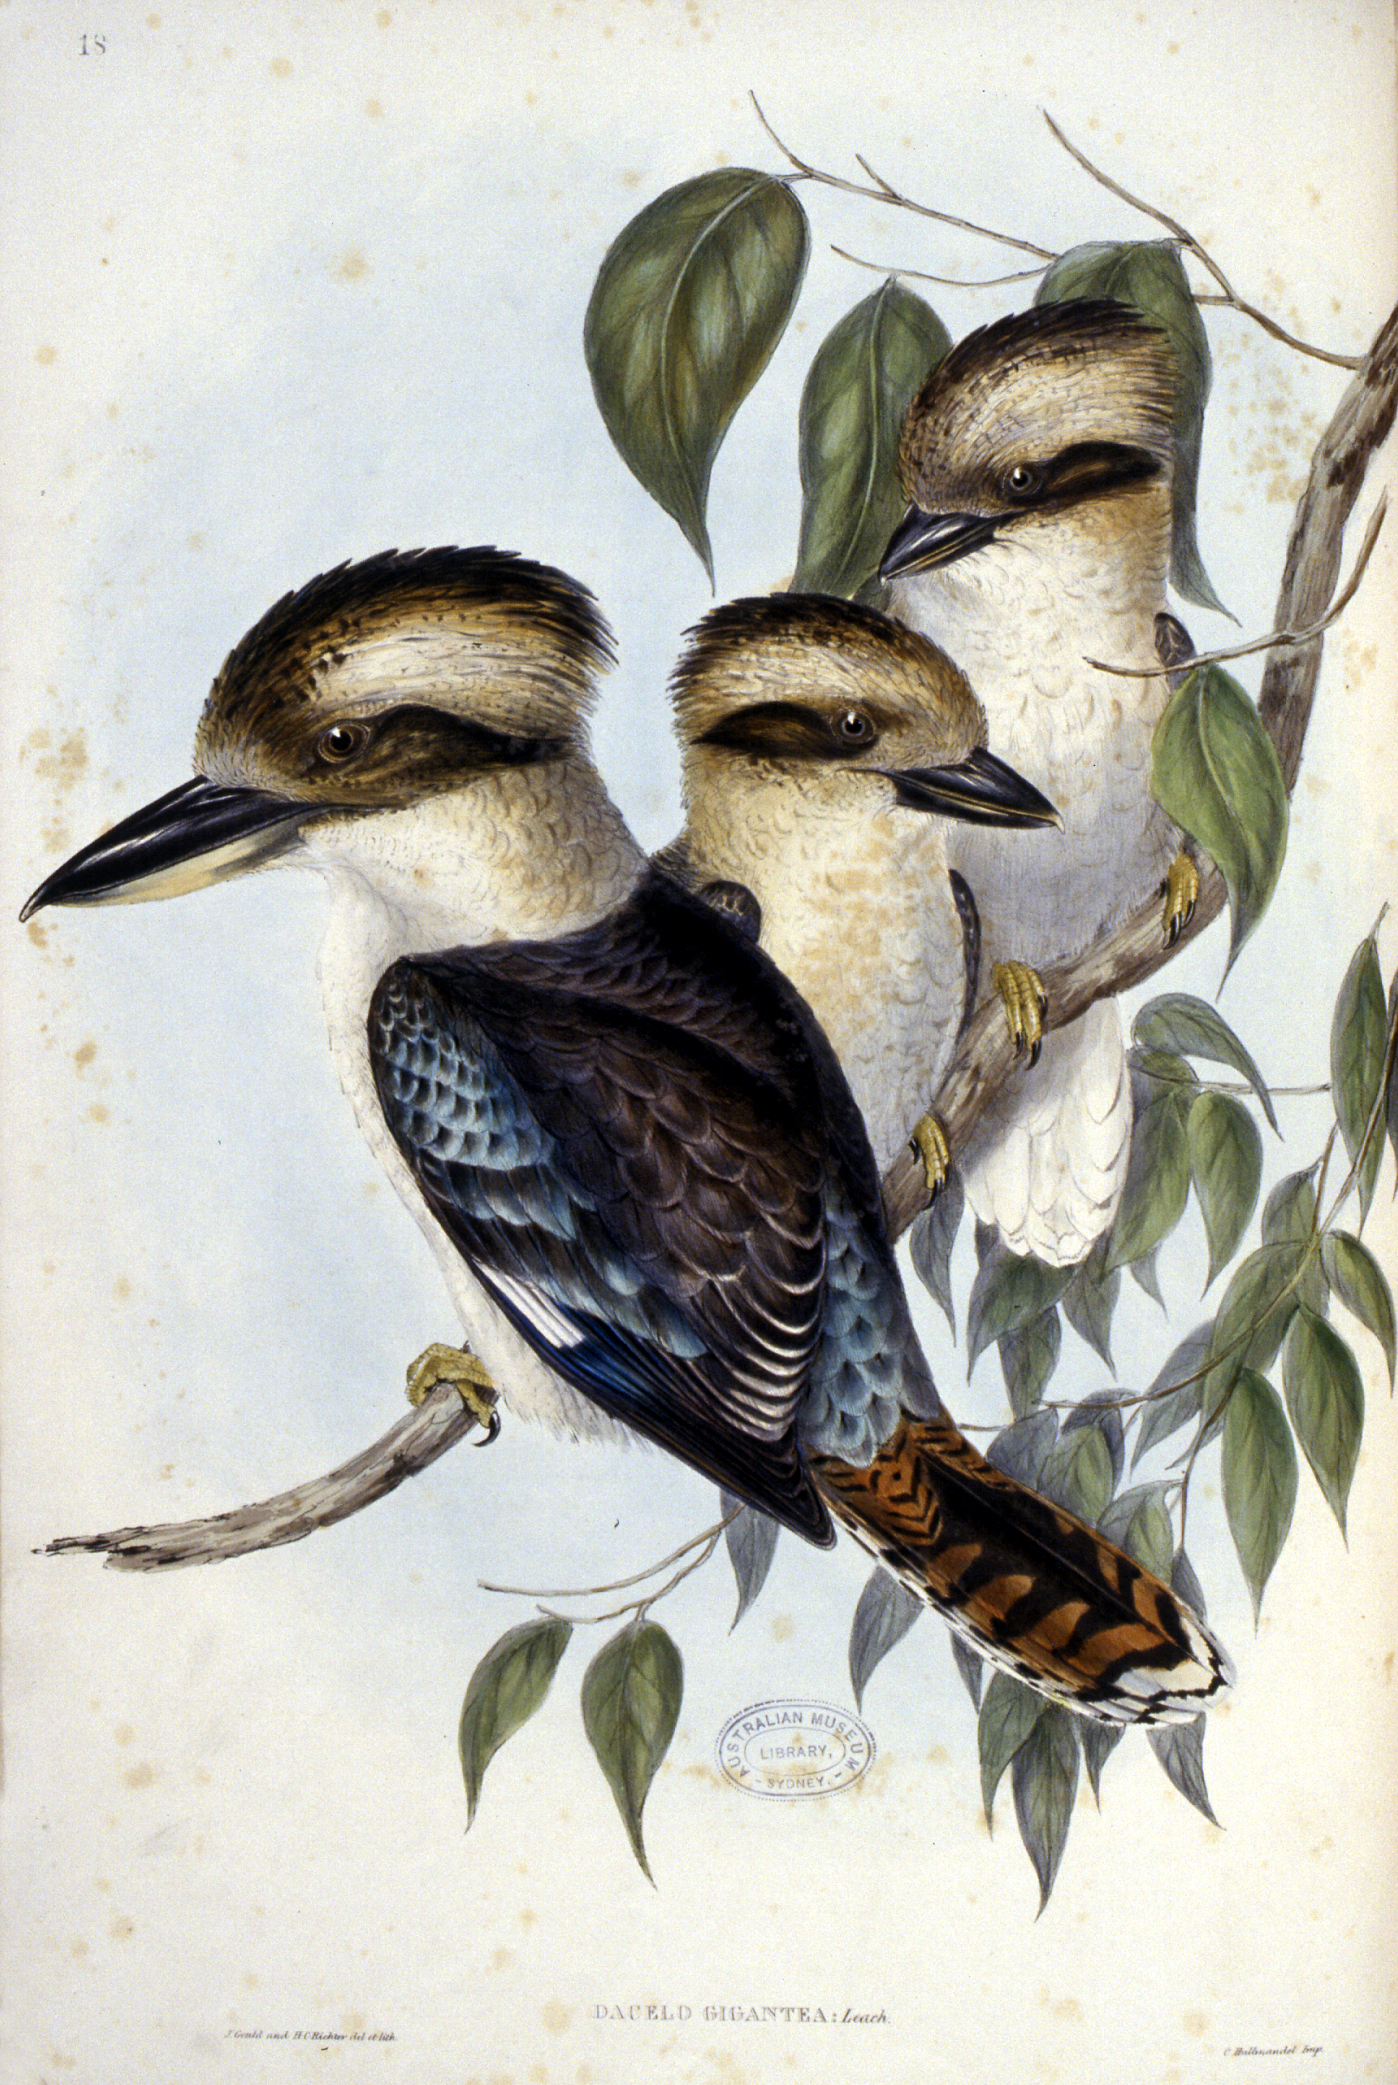 The Birds of Australia : in seven volumes / by John Gould. (Rare Book Colouring 2020)